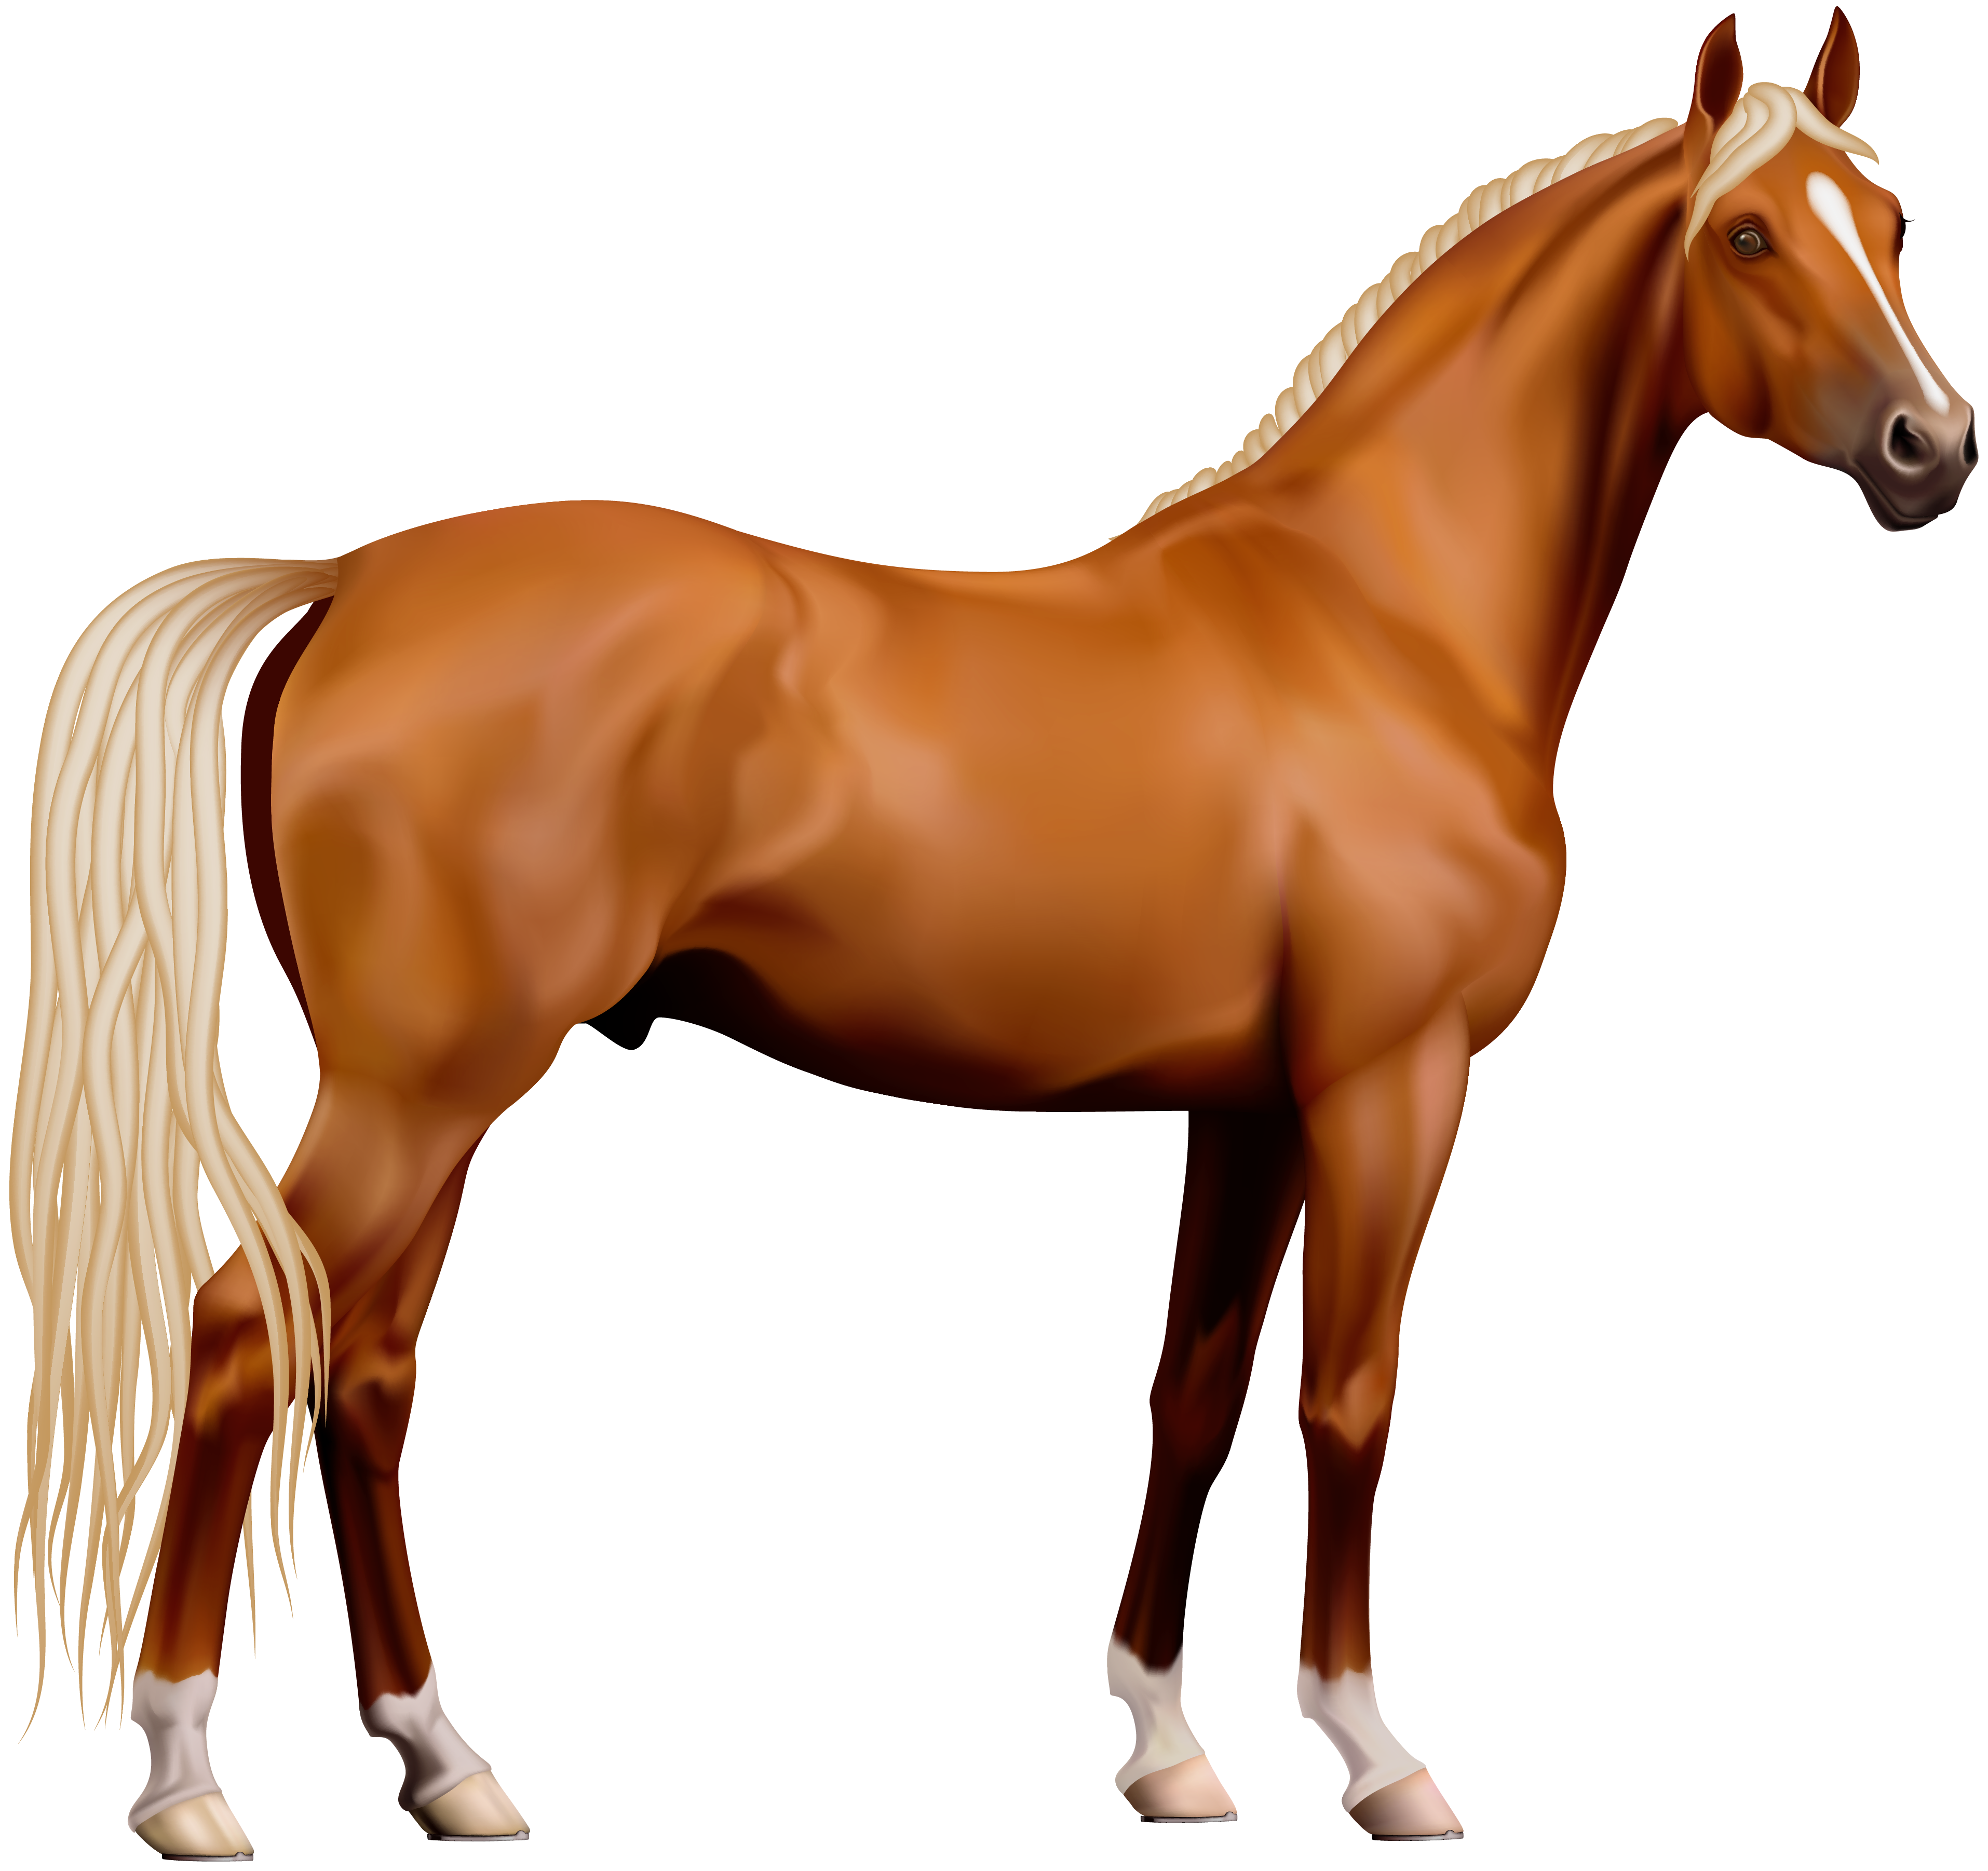 Free Horse Cliparts Transparent, Download Free Clip Art, Free Clip.